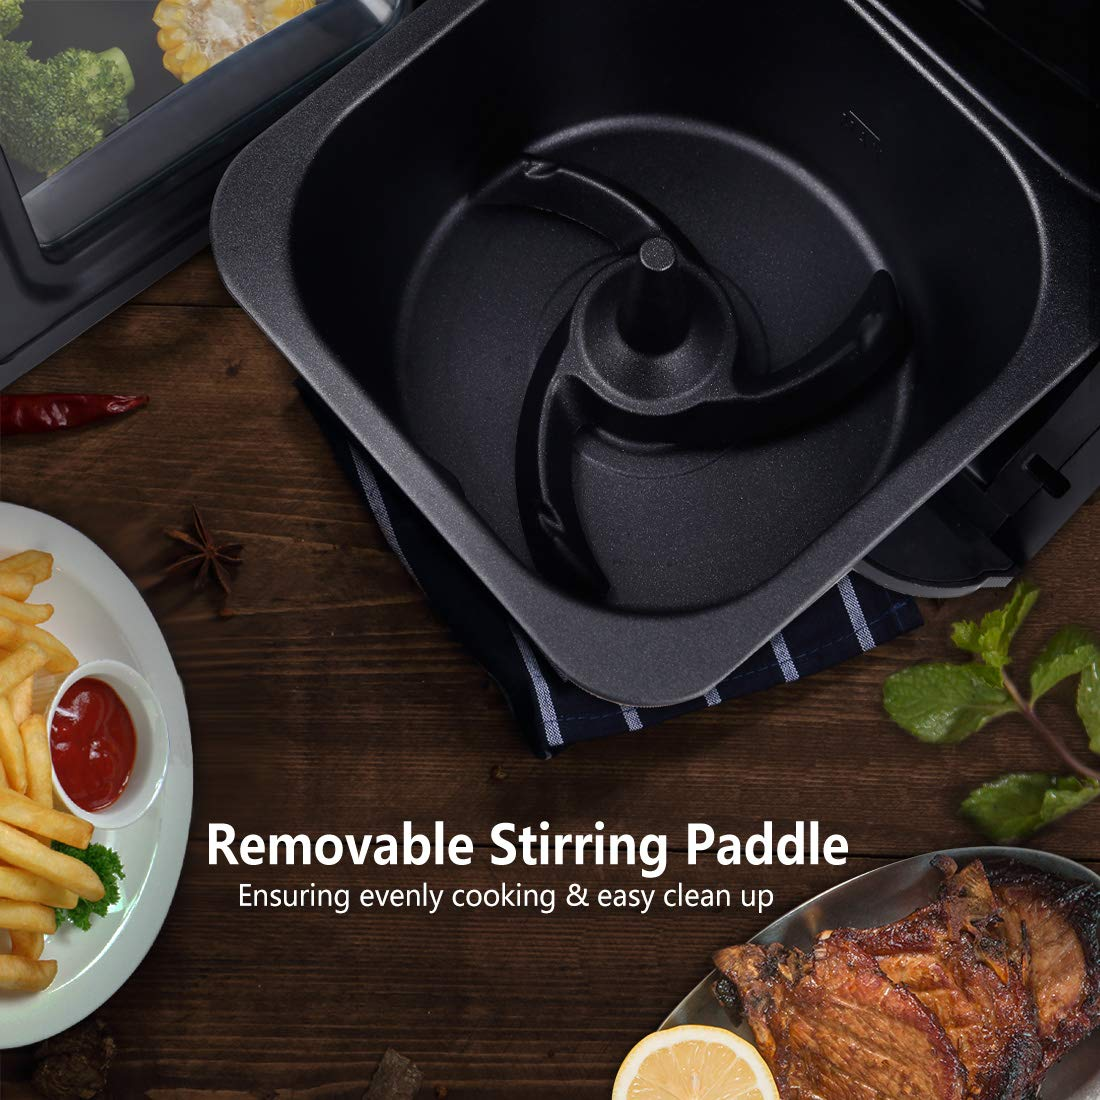 SARKI XL Fryer Viewing Window 12Qt Large Capacity, 6-Piece Programmable Air Oven with 12 Pre Settings Electric Hot Deep 6.3Qt Extra Fry Pan Inside-1700W /110V by SARKI (Image #3)